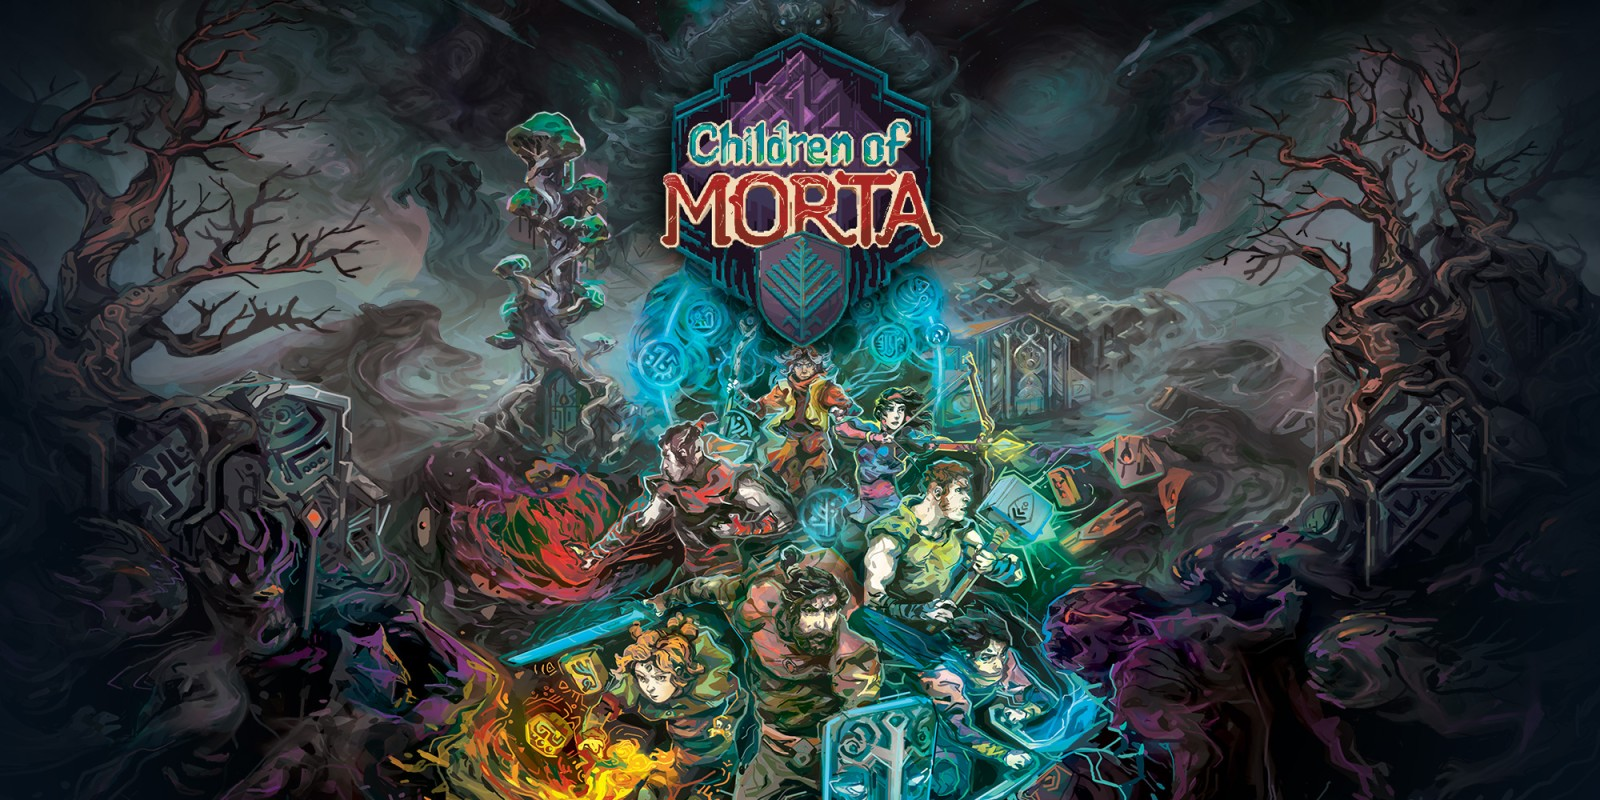 H2x1_NSwitch_ChildrenOfMorta_image1600w